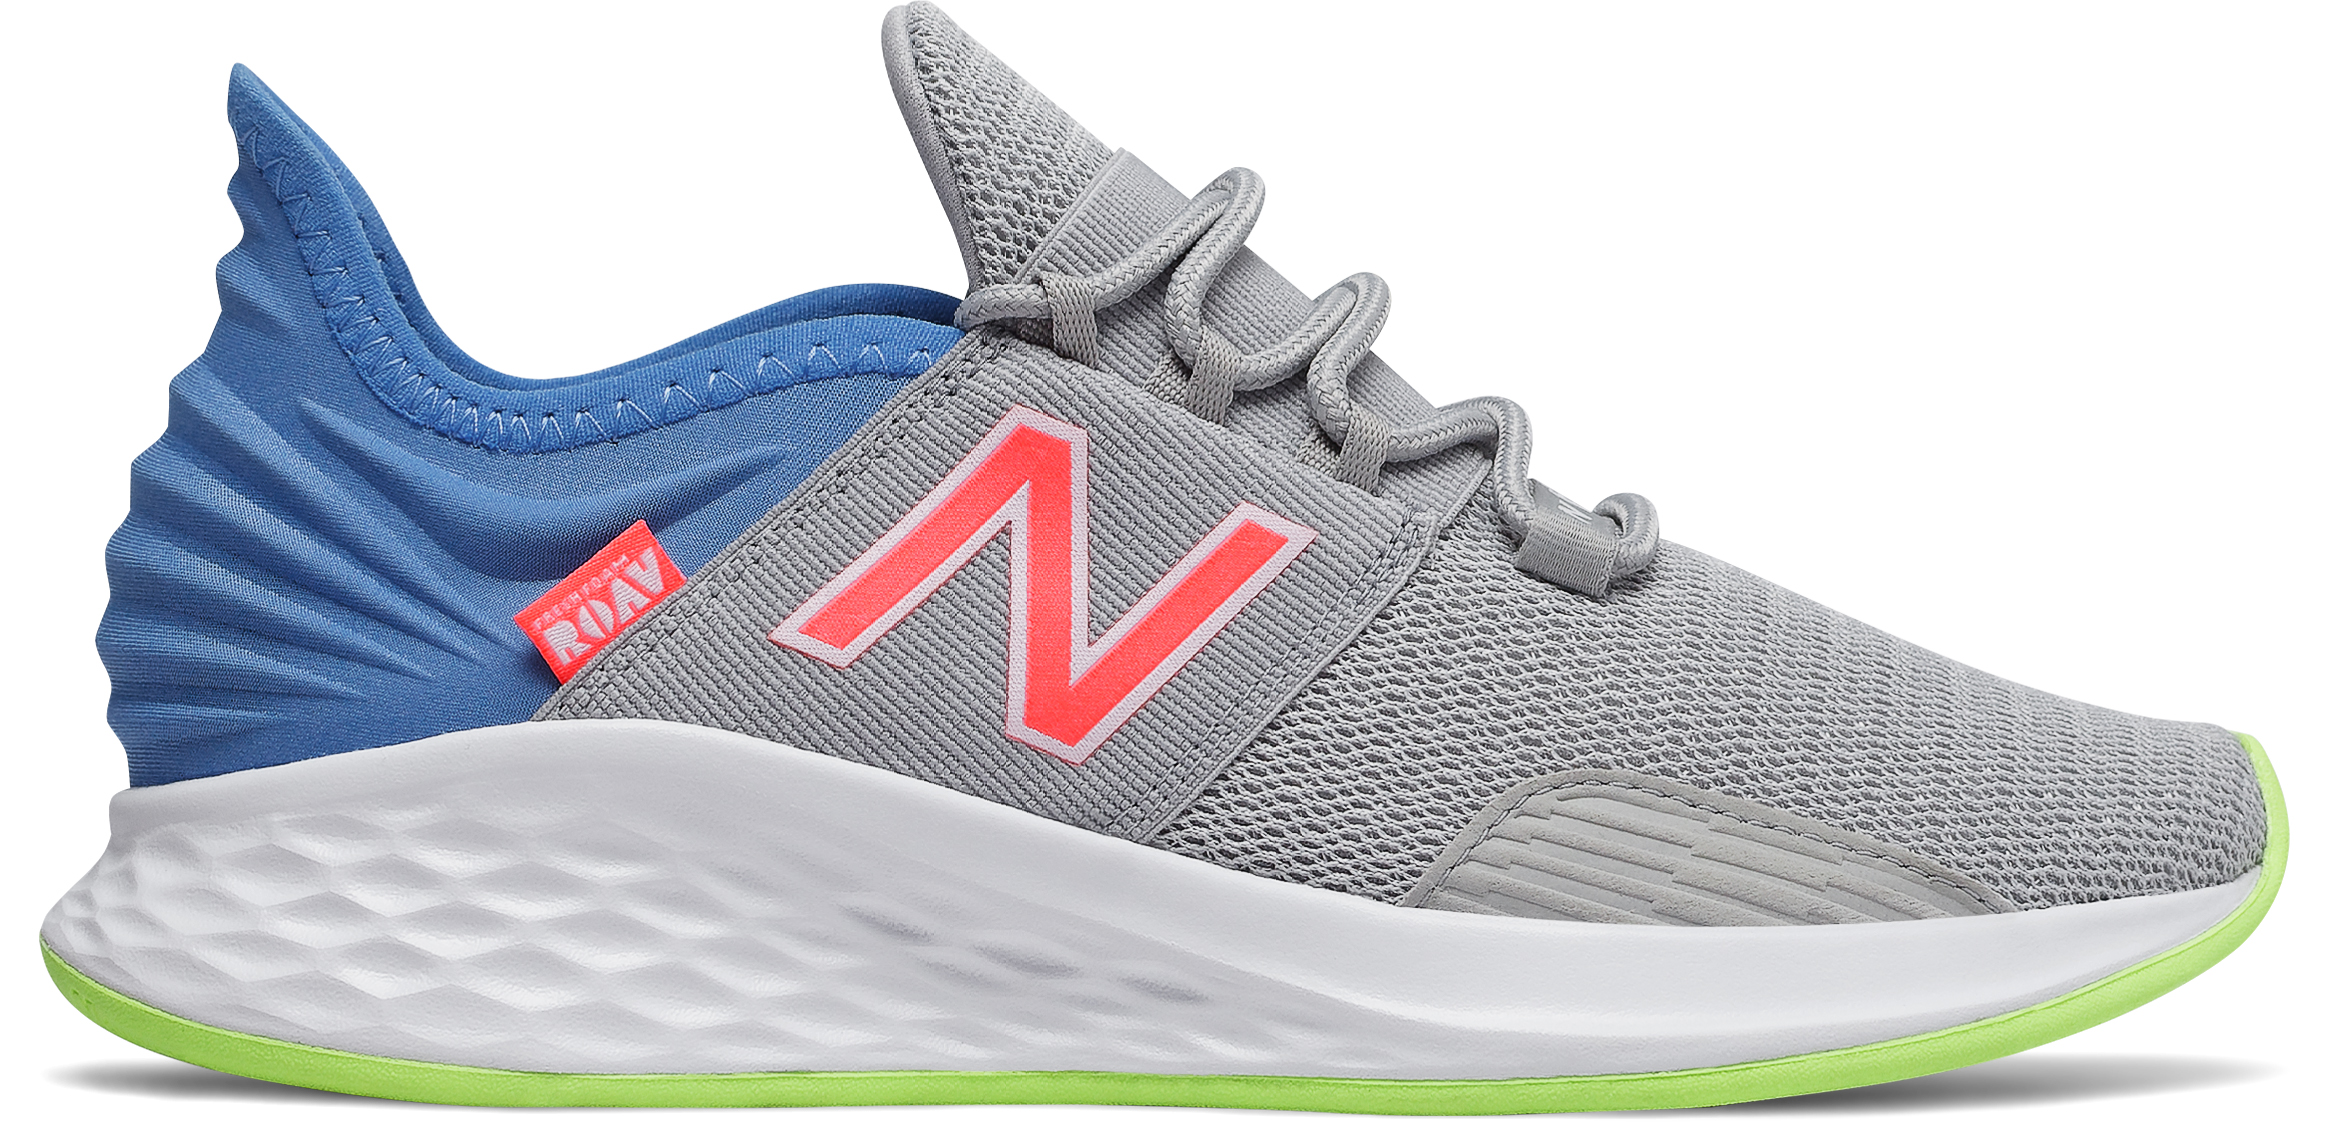 a163799ca86 New Balance Fresh Foam ROAV Shoes - Women's | MEC